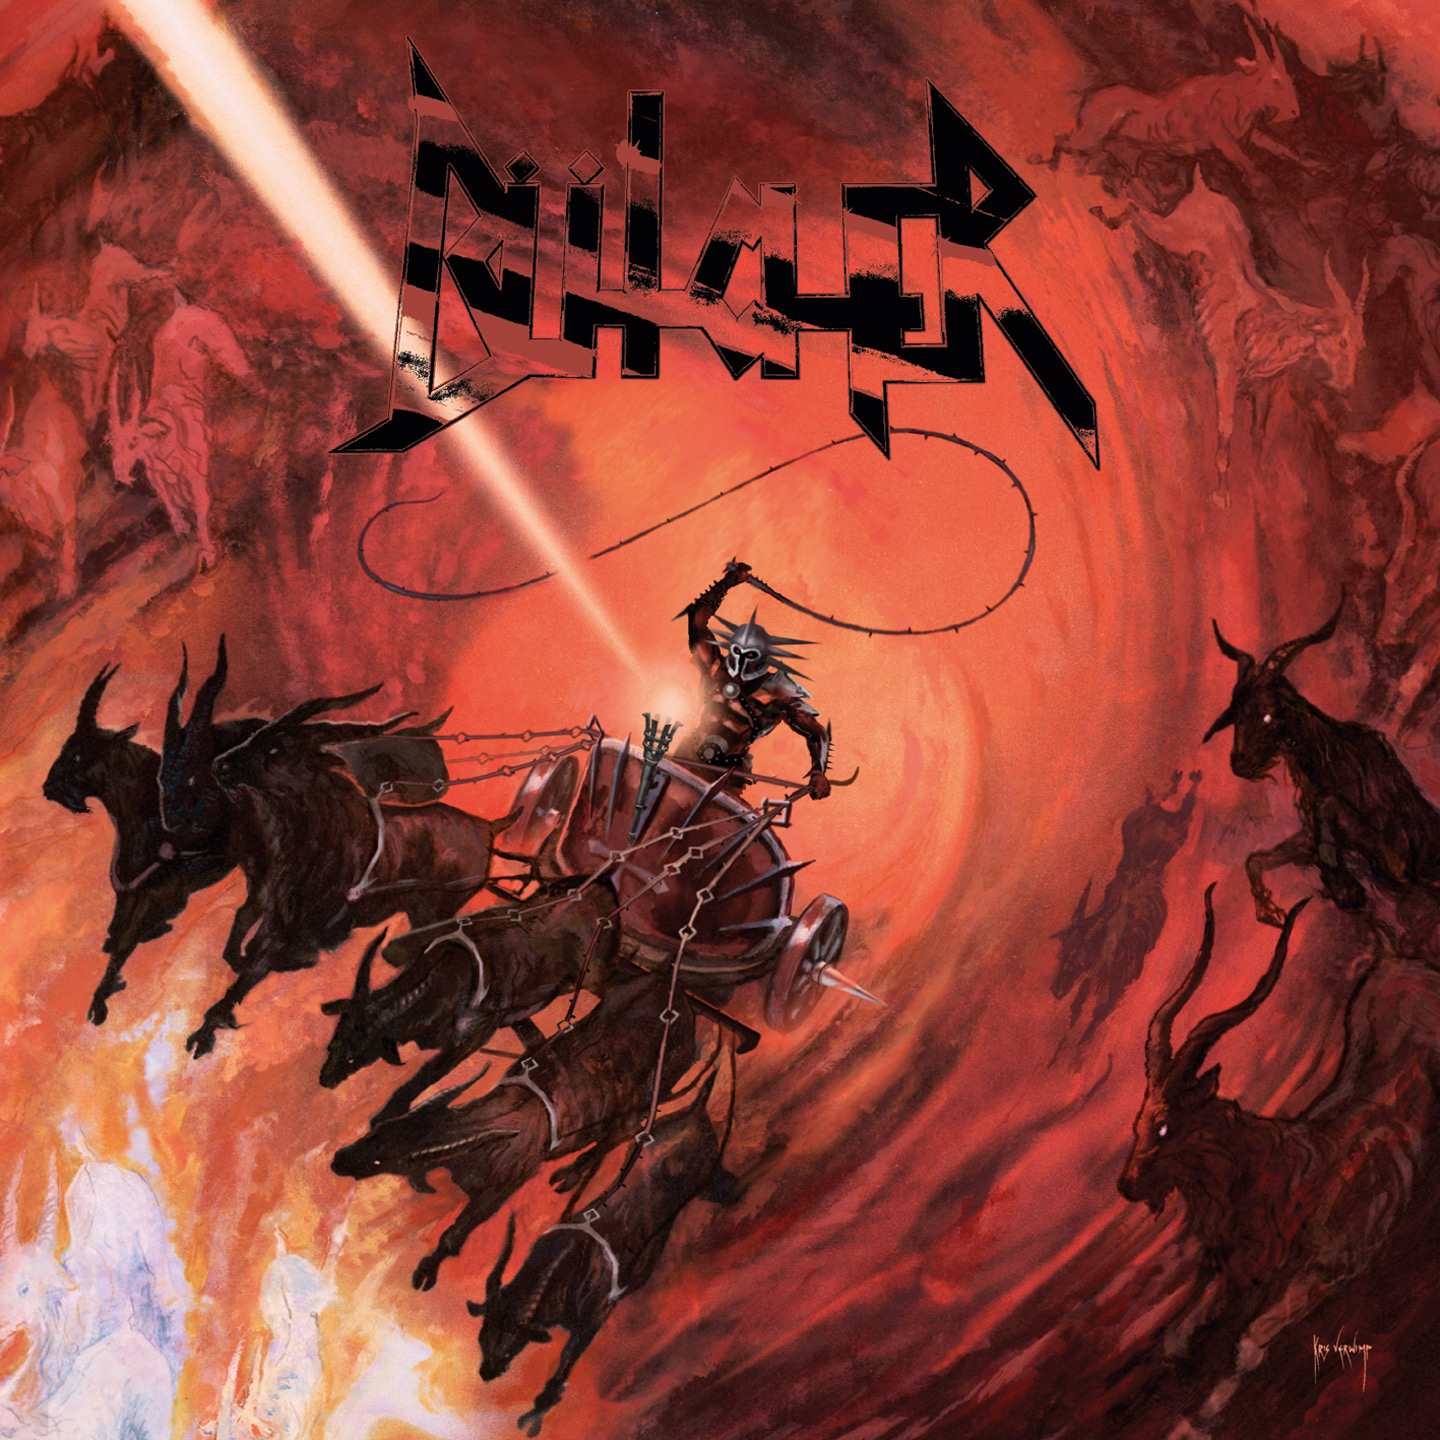 Bütcher - 666 Goats Carry My Chariot albumcover 2020